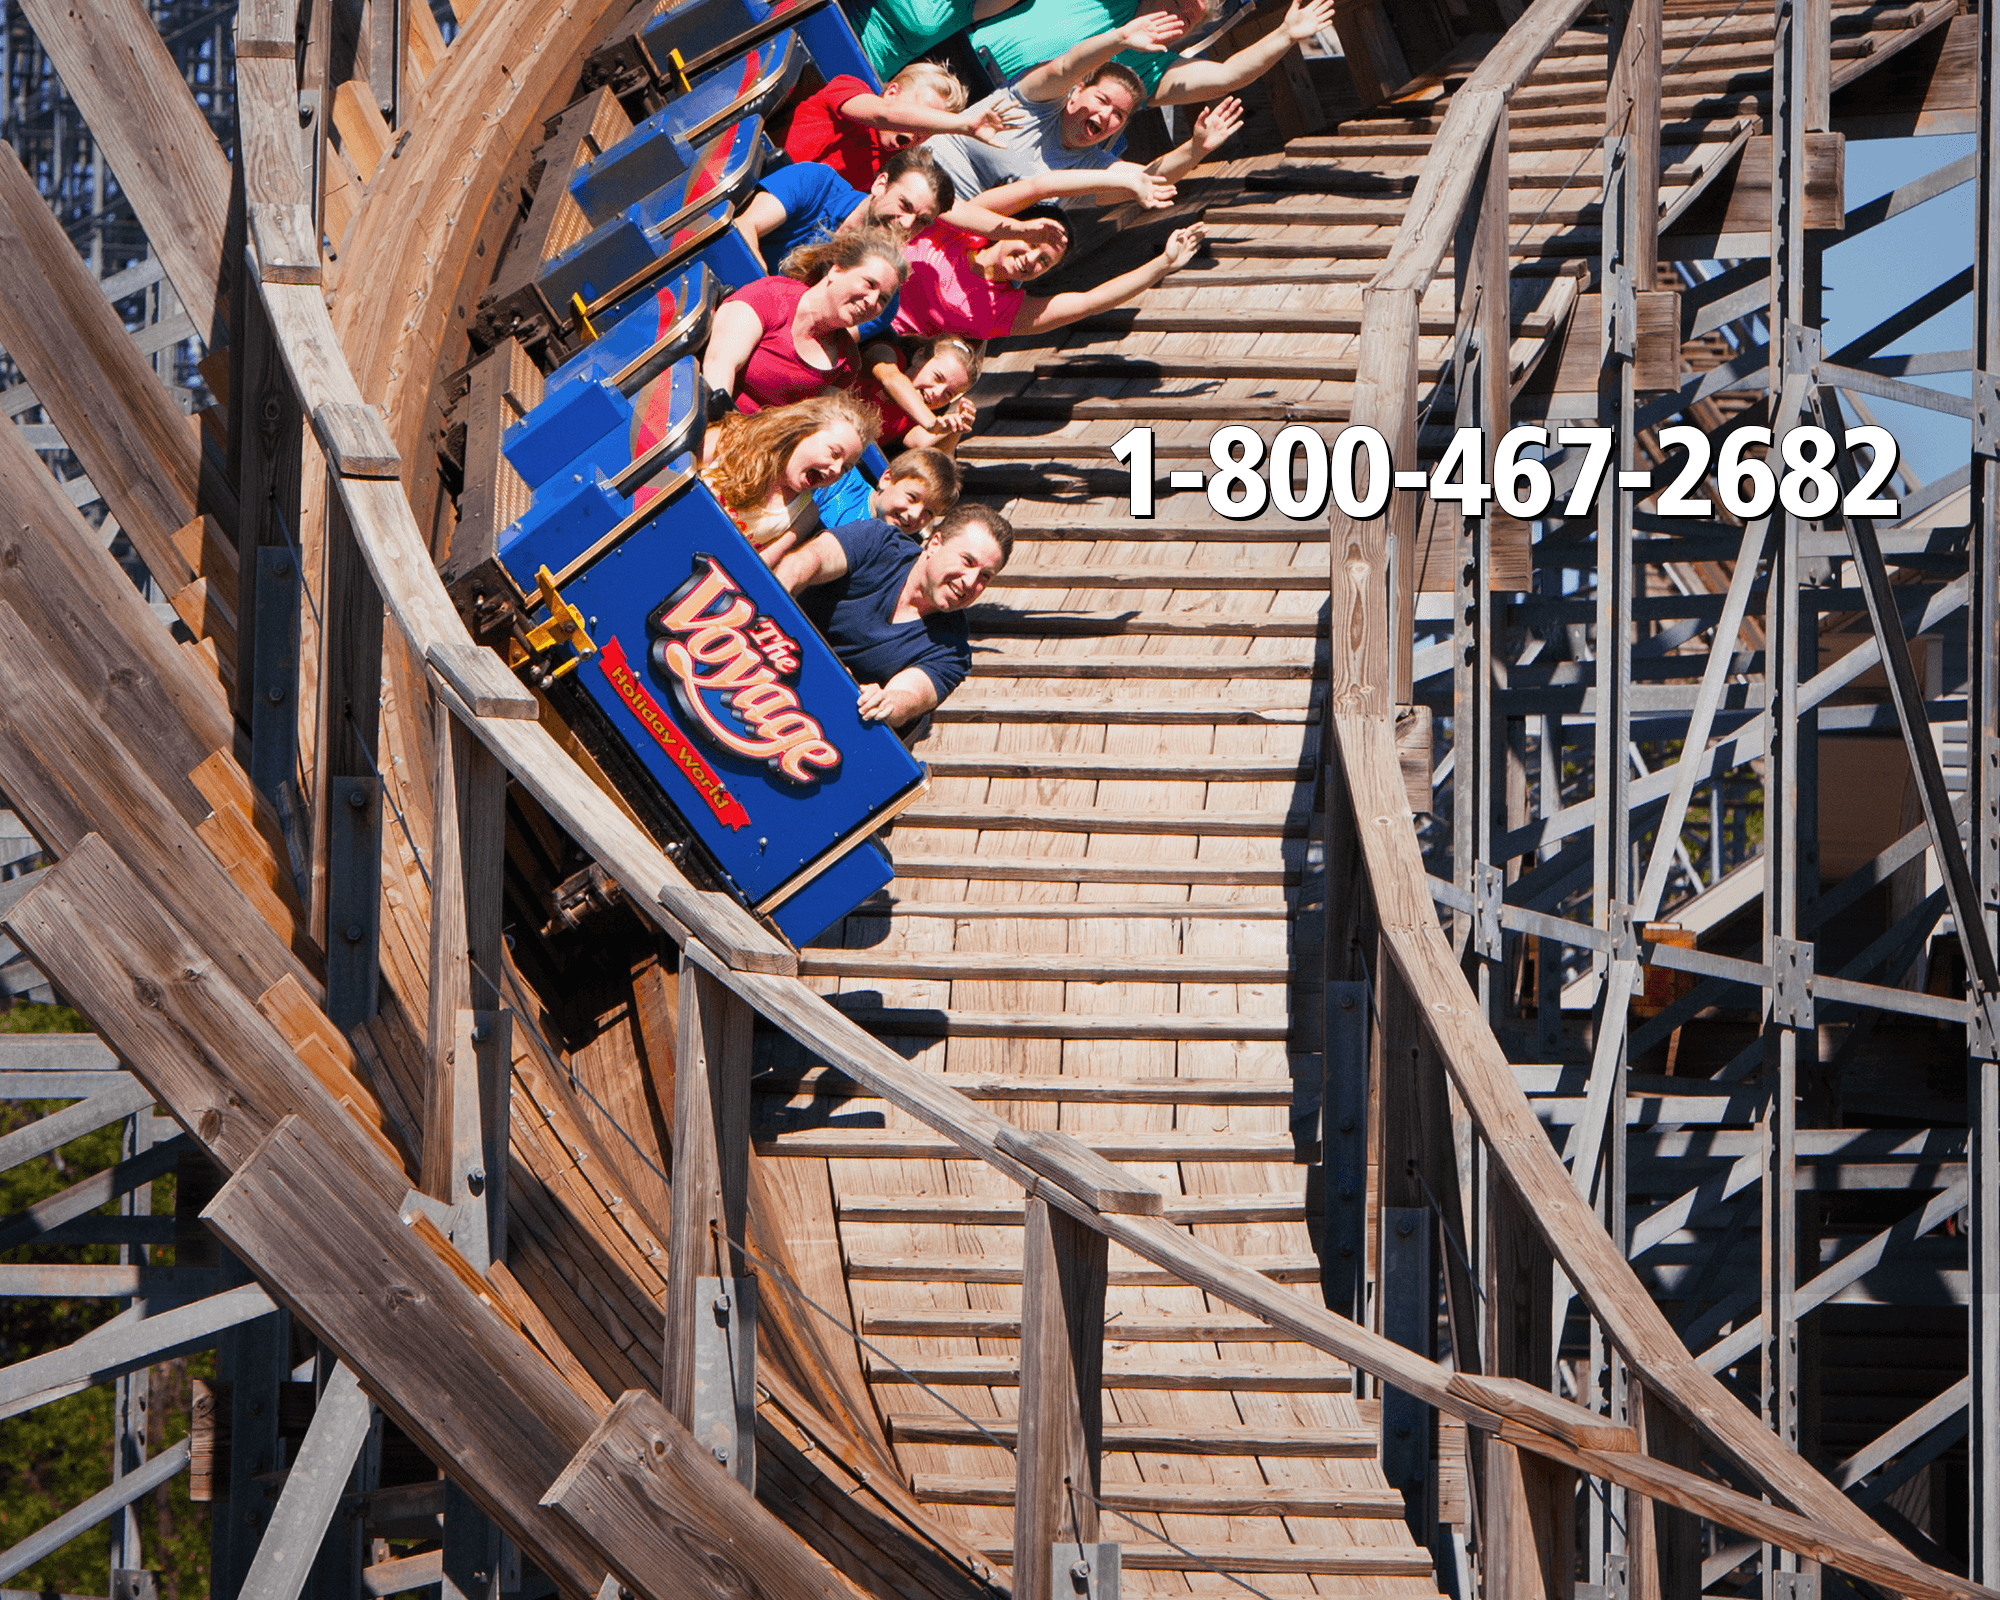 Call Today! 1-800-467-2682 | Holiday World & Splashin' Safari